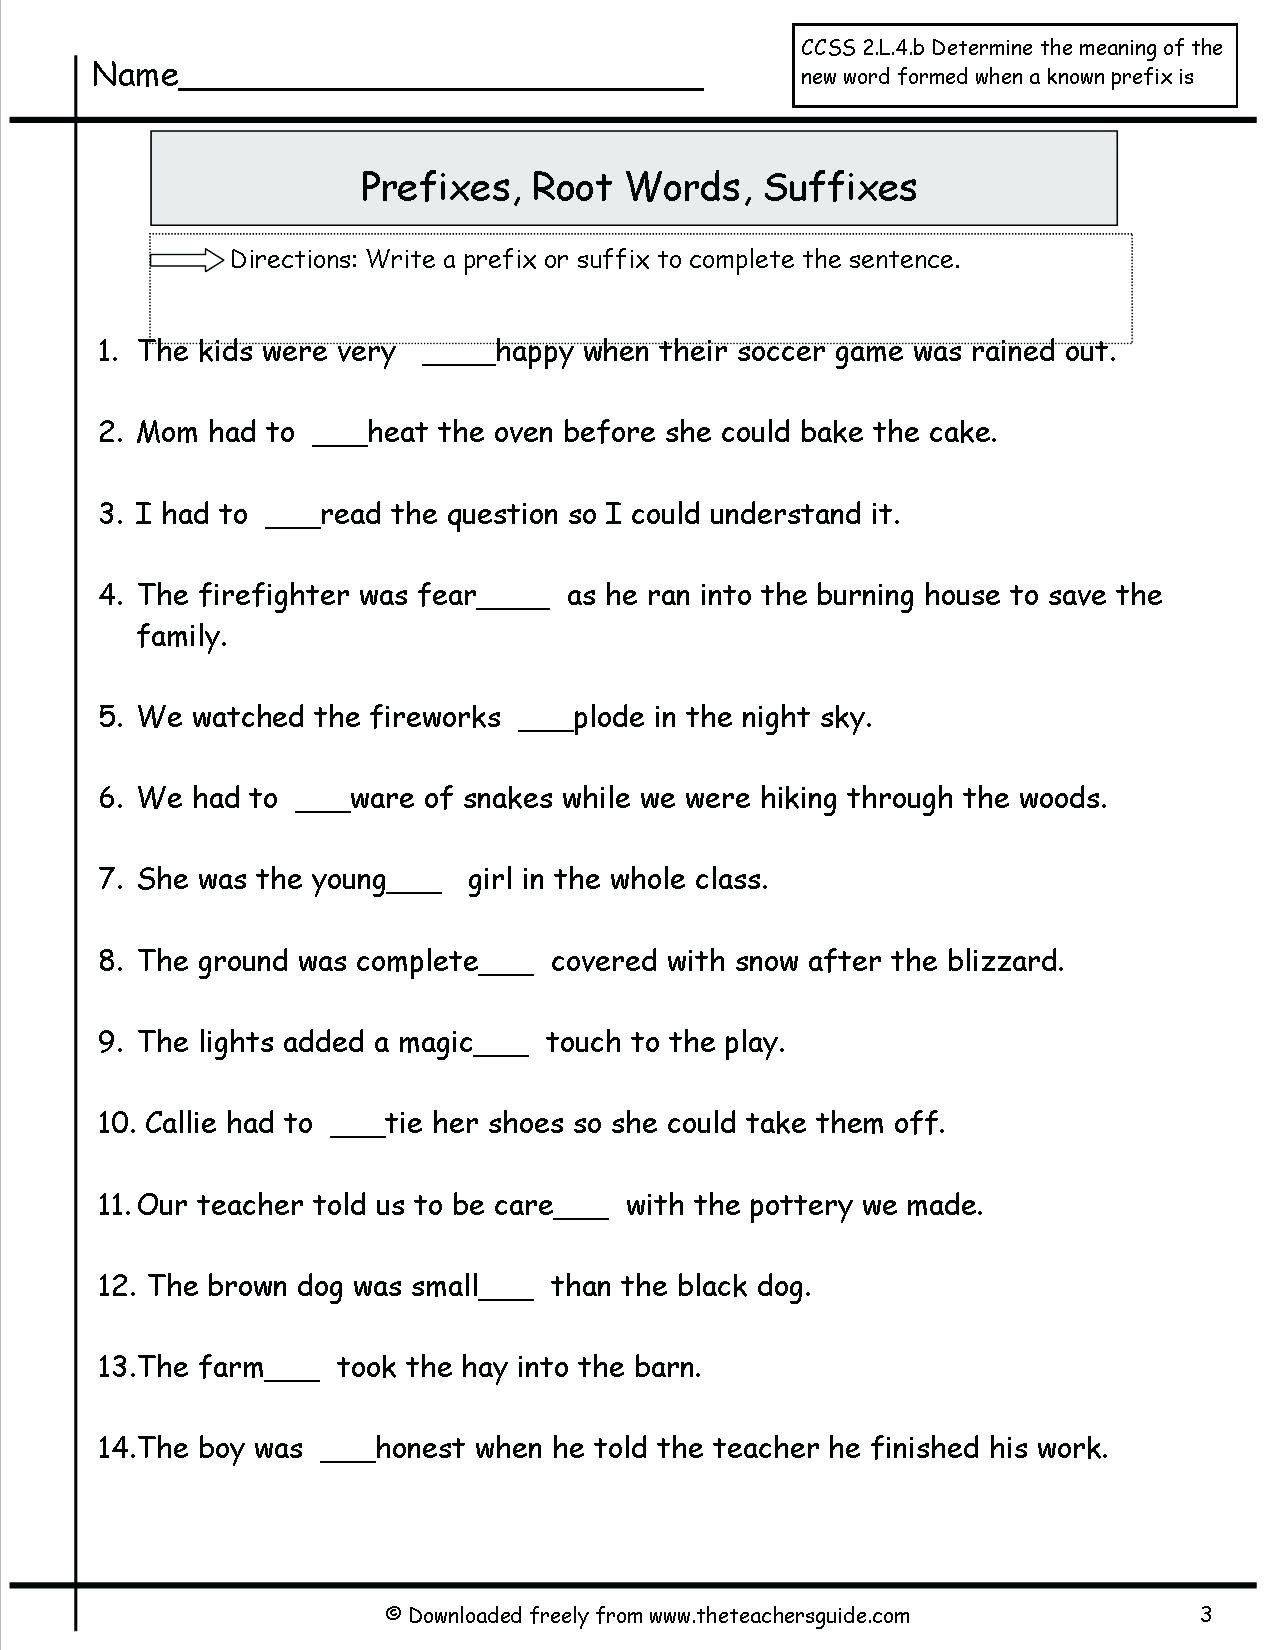 hight resolution of Suffix Worksheets for 4th Grade 3rd Grade Prefixes and Suffixes Worksheets  Root Words   Suffixes worksheets